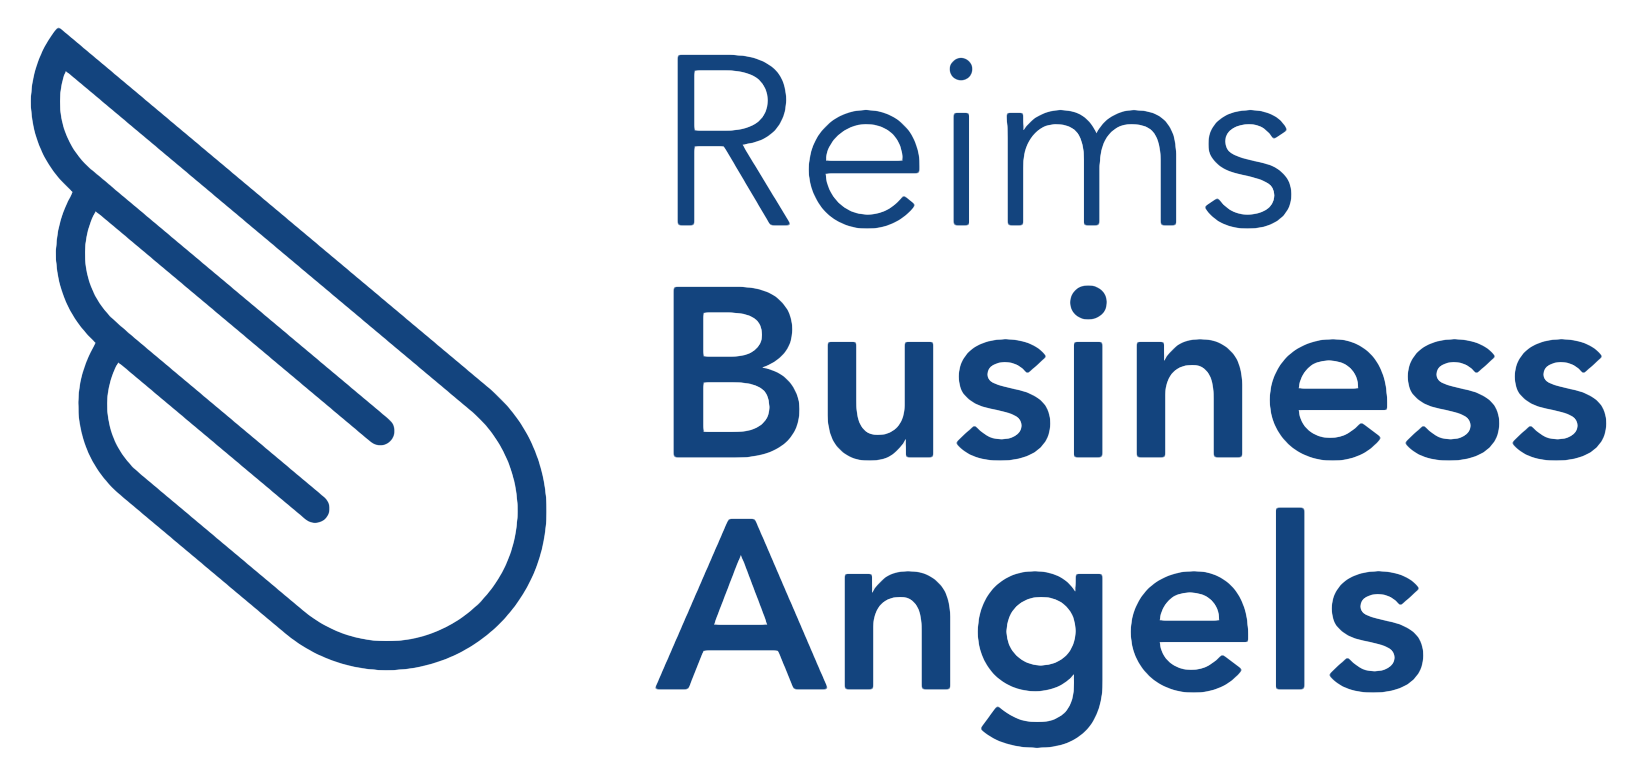 Reims Business Angels